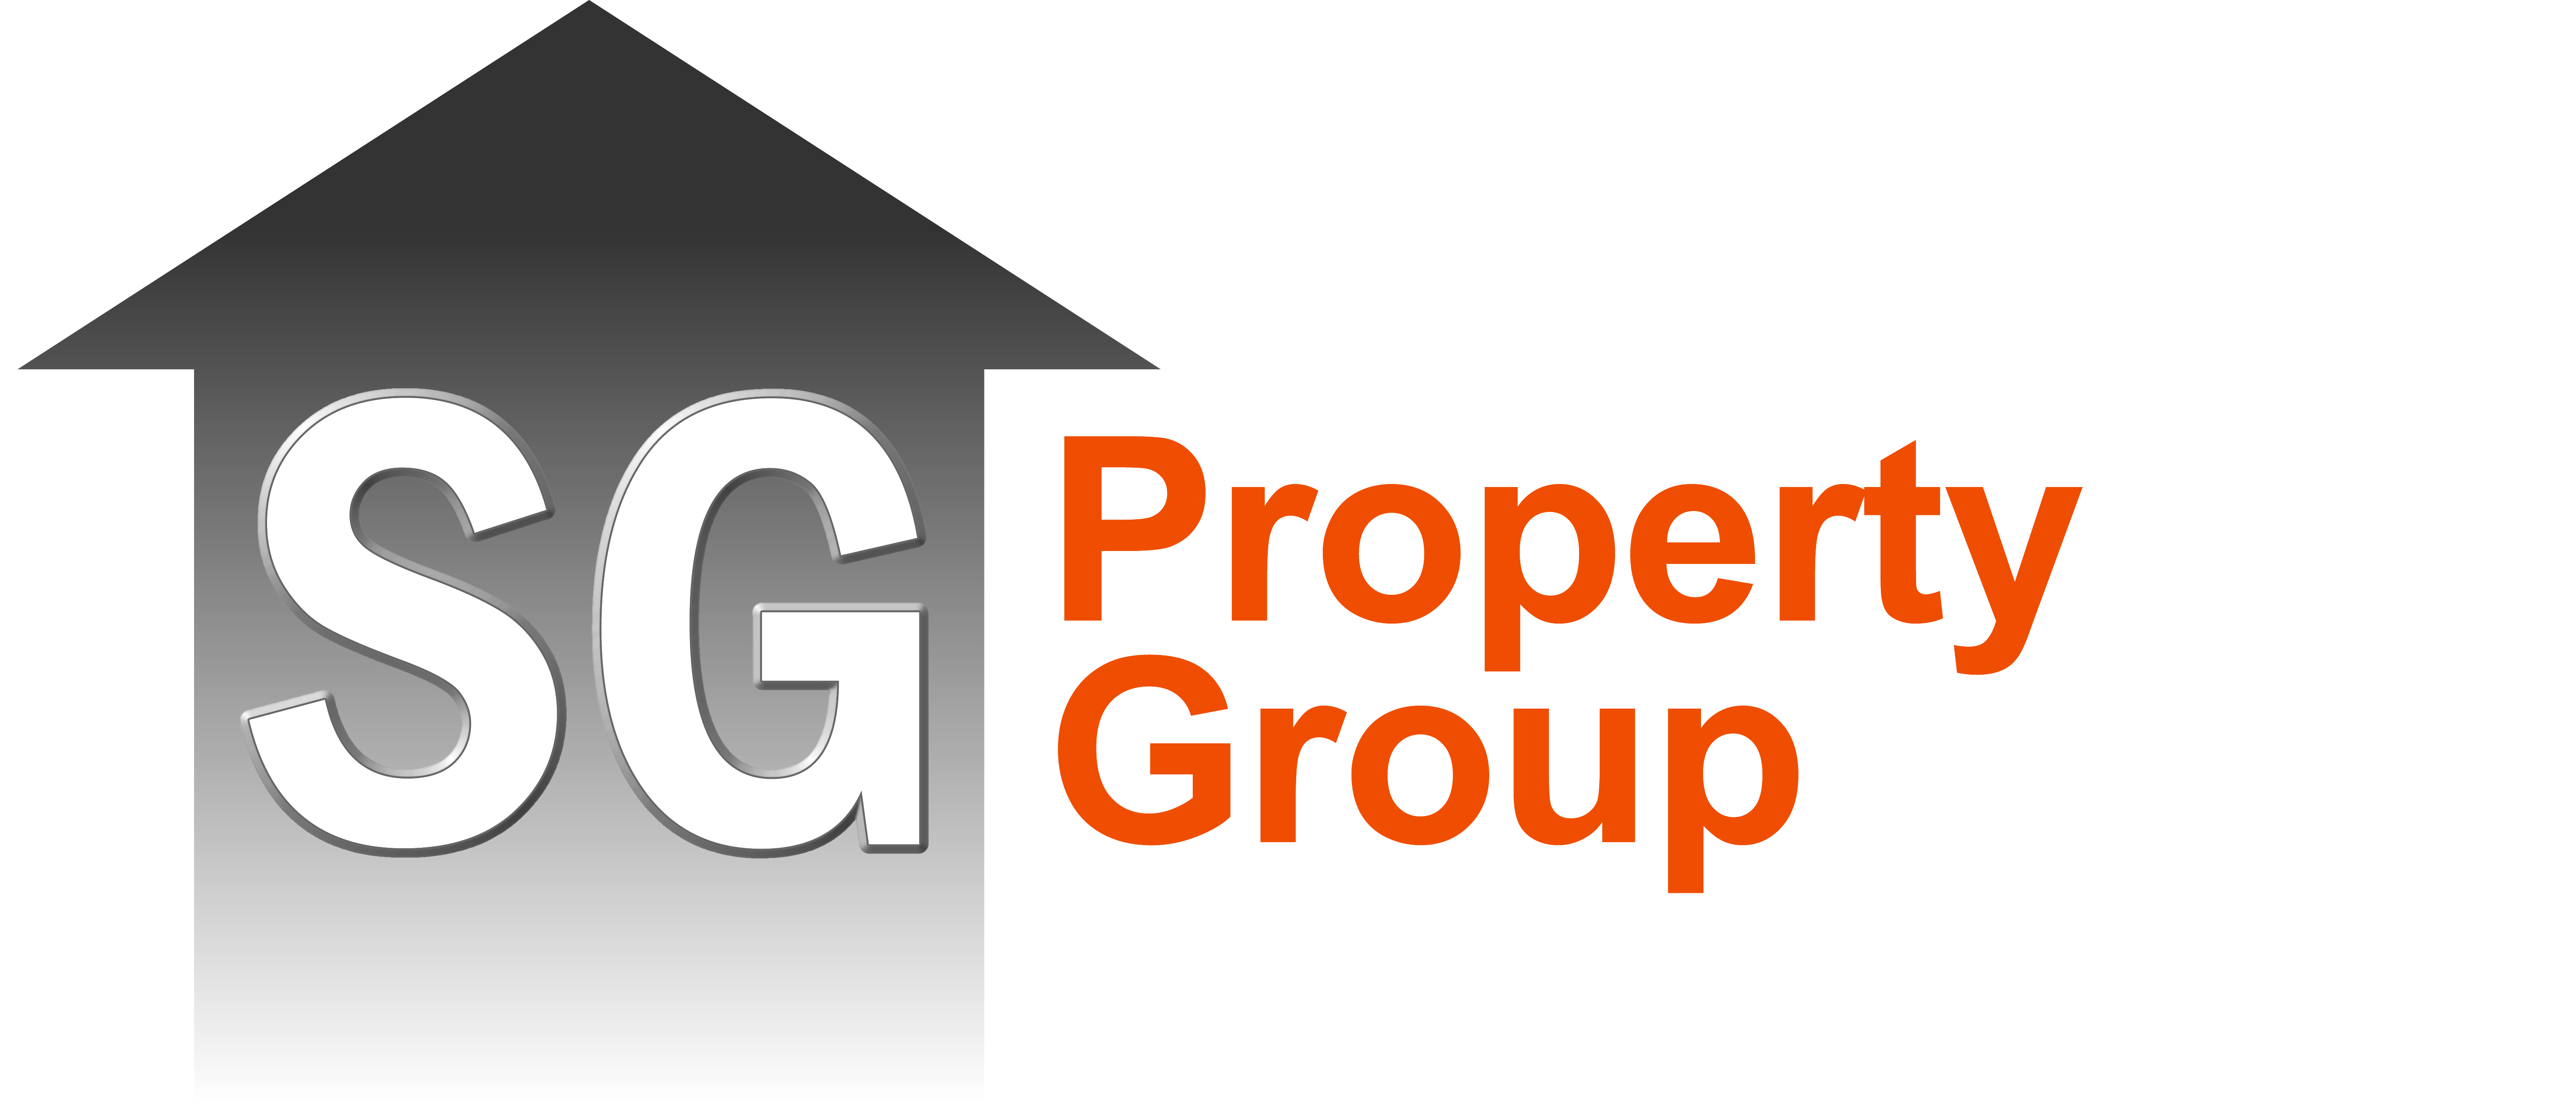 SG Property Group - Crewe's Premier Accommodation Provider for Rooms, Apartments and Self Catering Properties in Crewe, Cheshire